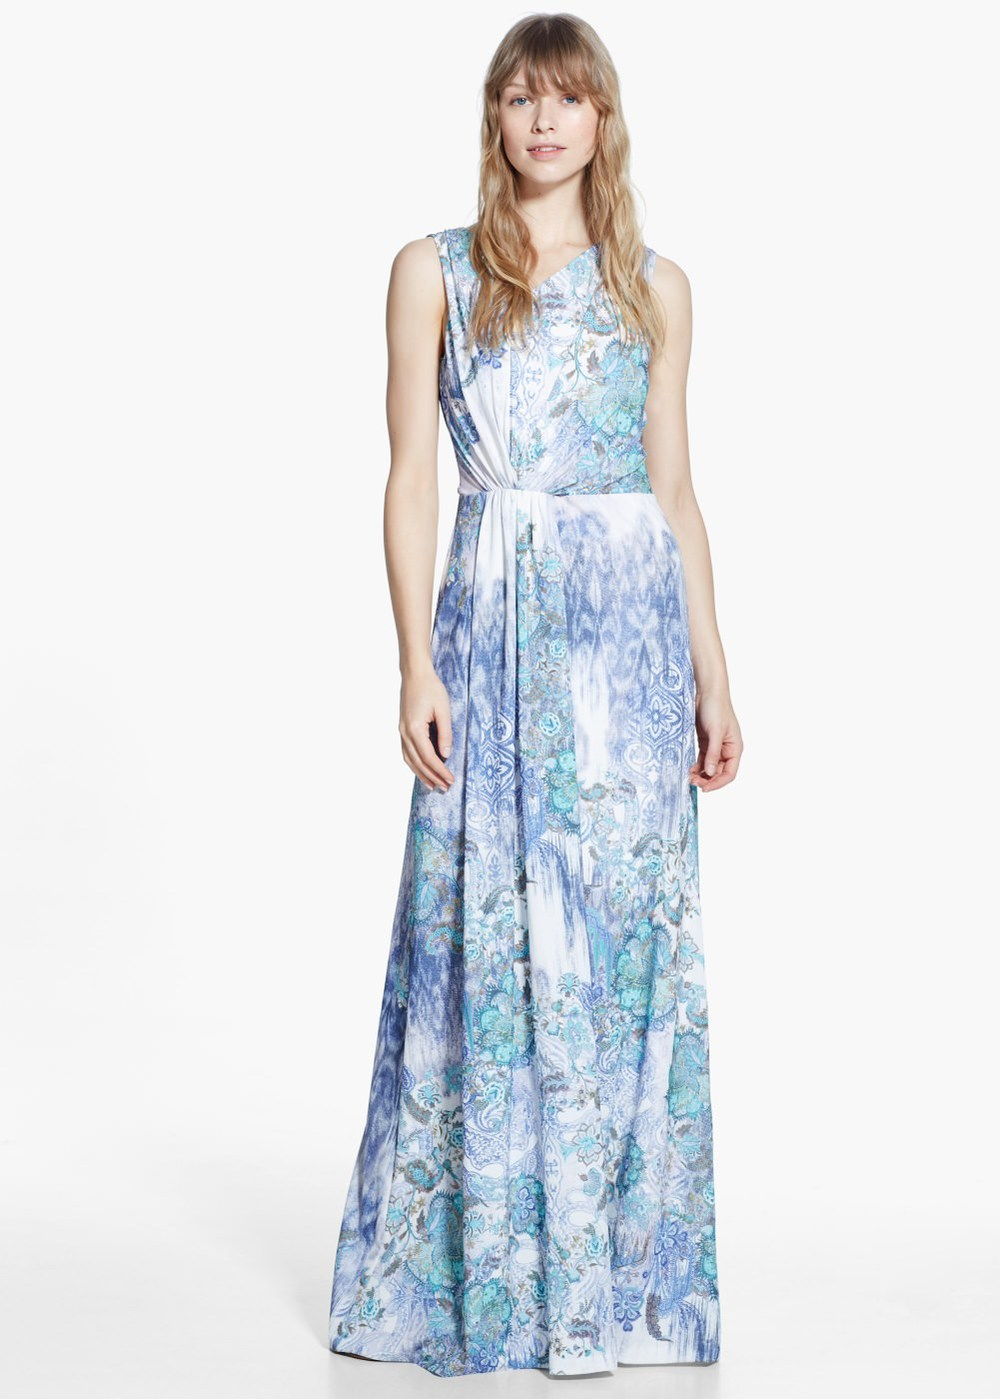 Mango, Printed Gown £44.99